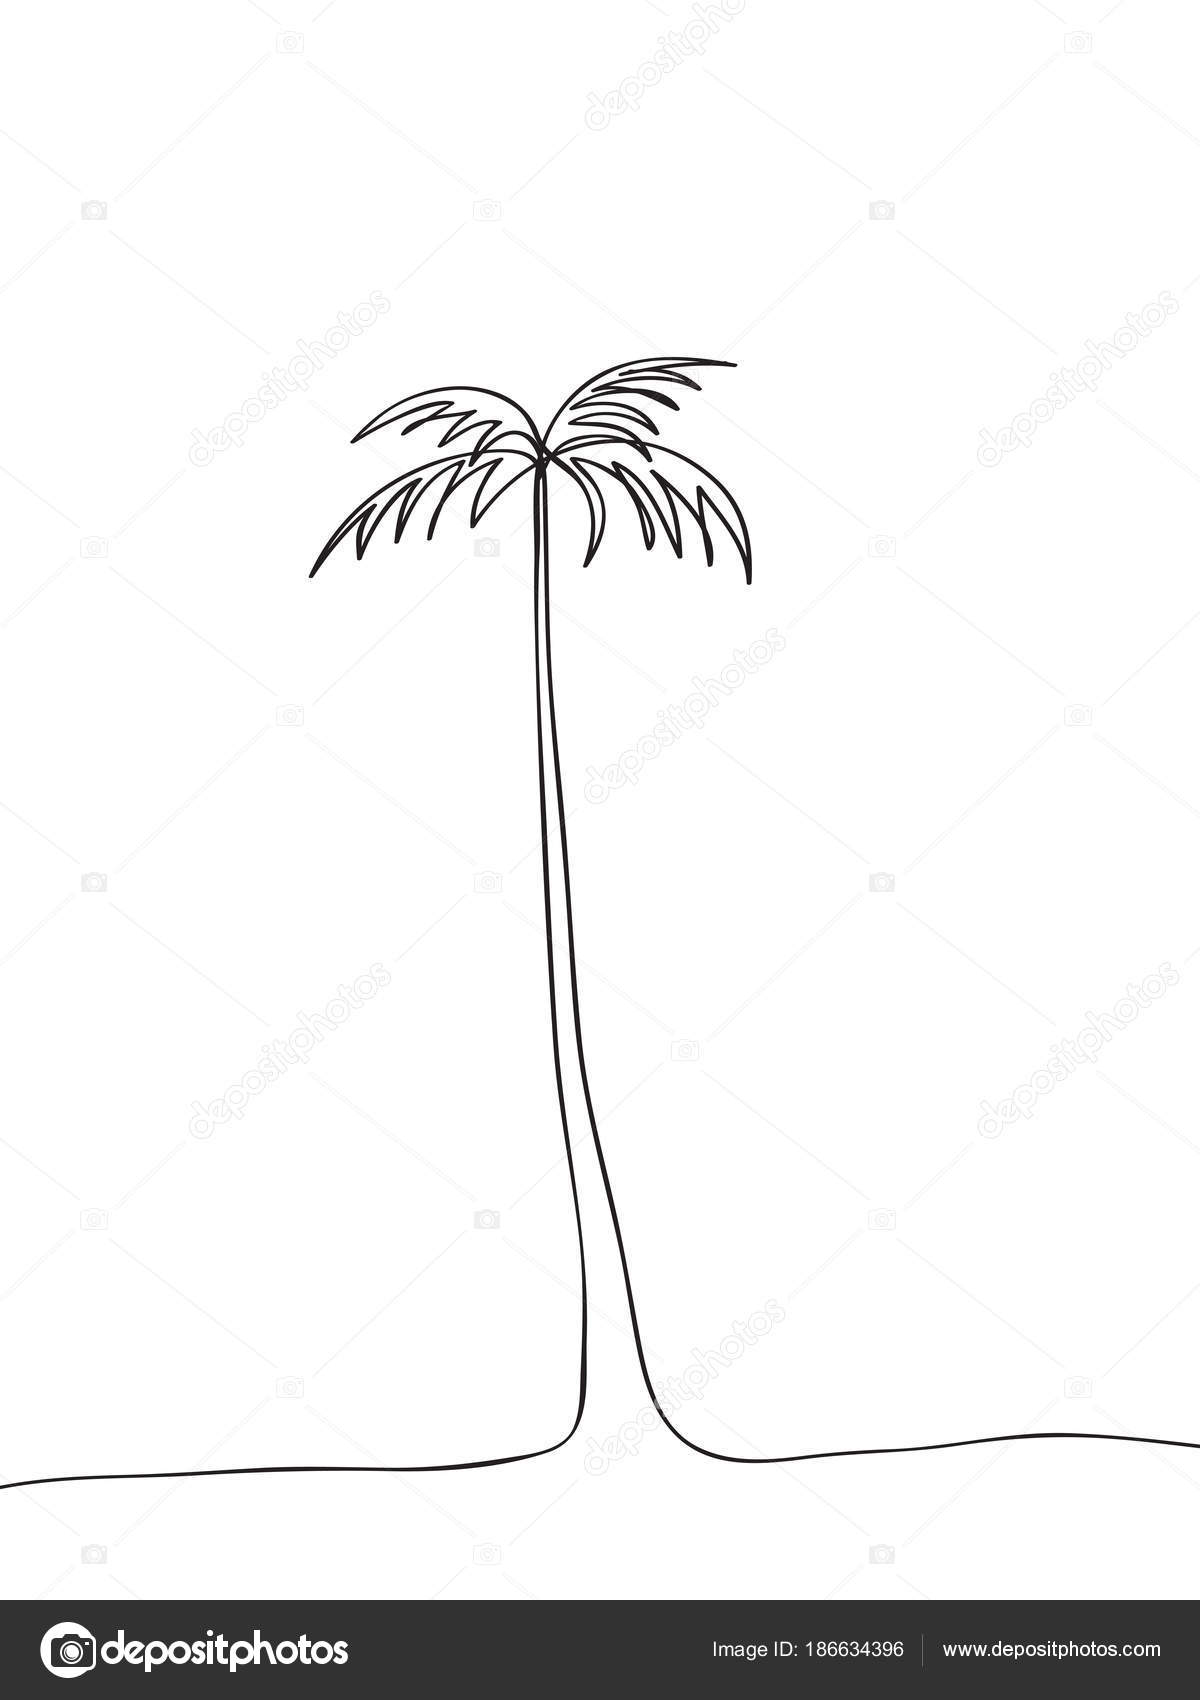 palm tree outline palm trees outline vector set stock illustration palm tree outline